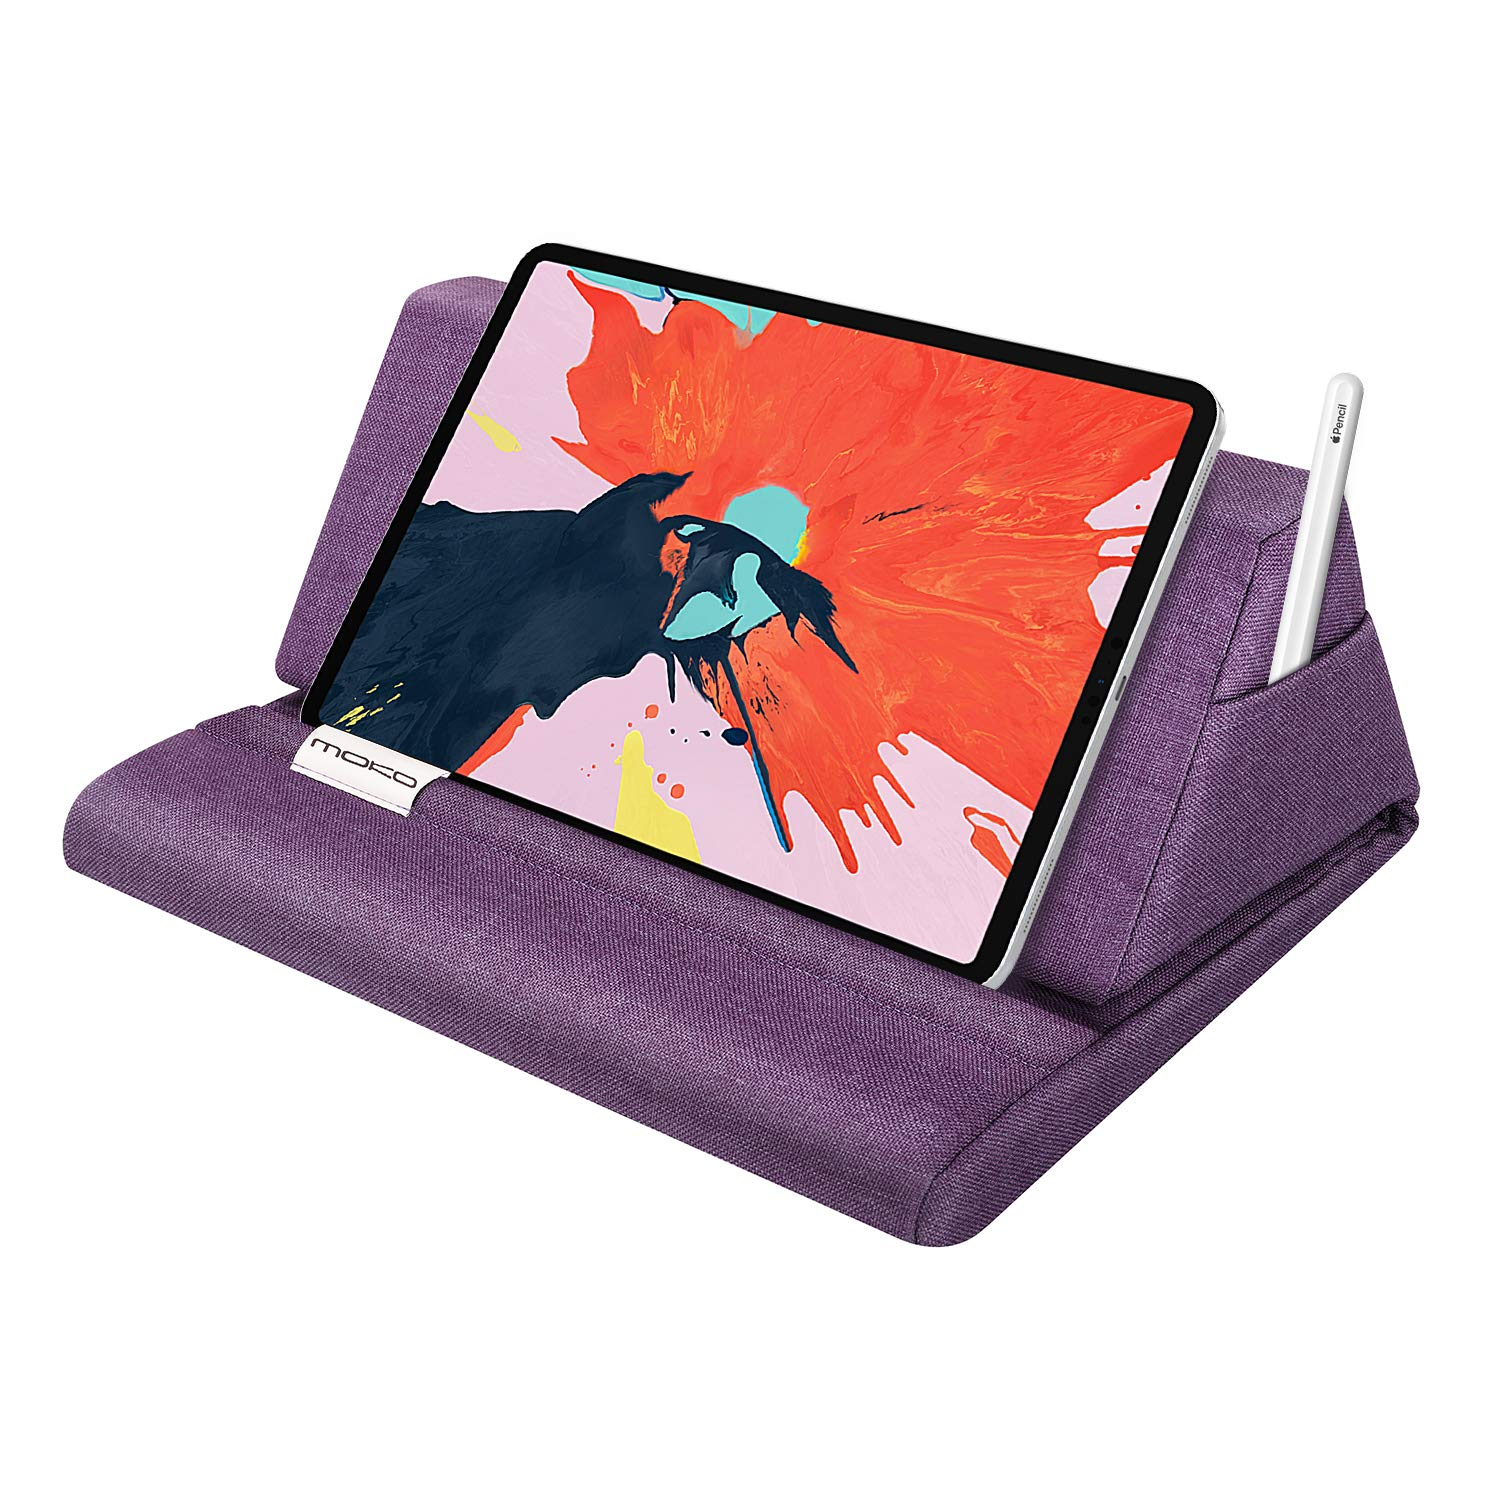 "MoKo Tablet Pillow Stand, Soft Bed Pillow Holder Fits up to 11"" Pad, Fit with iPad 10.2"" 2019, New iPad Air 3, Mini 5, Ipad Pro 11 2018/10.5/9.7, Air Mini 1 2 3 4, Samsung Galaxy Tab, Purple"